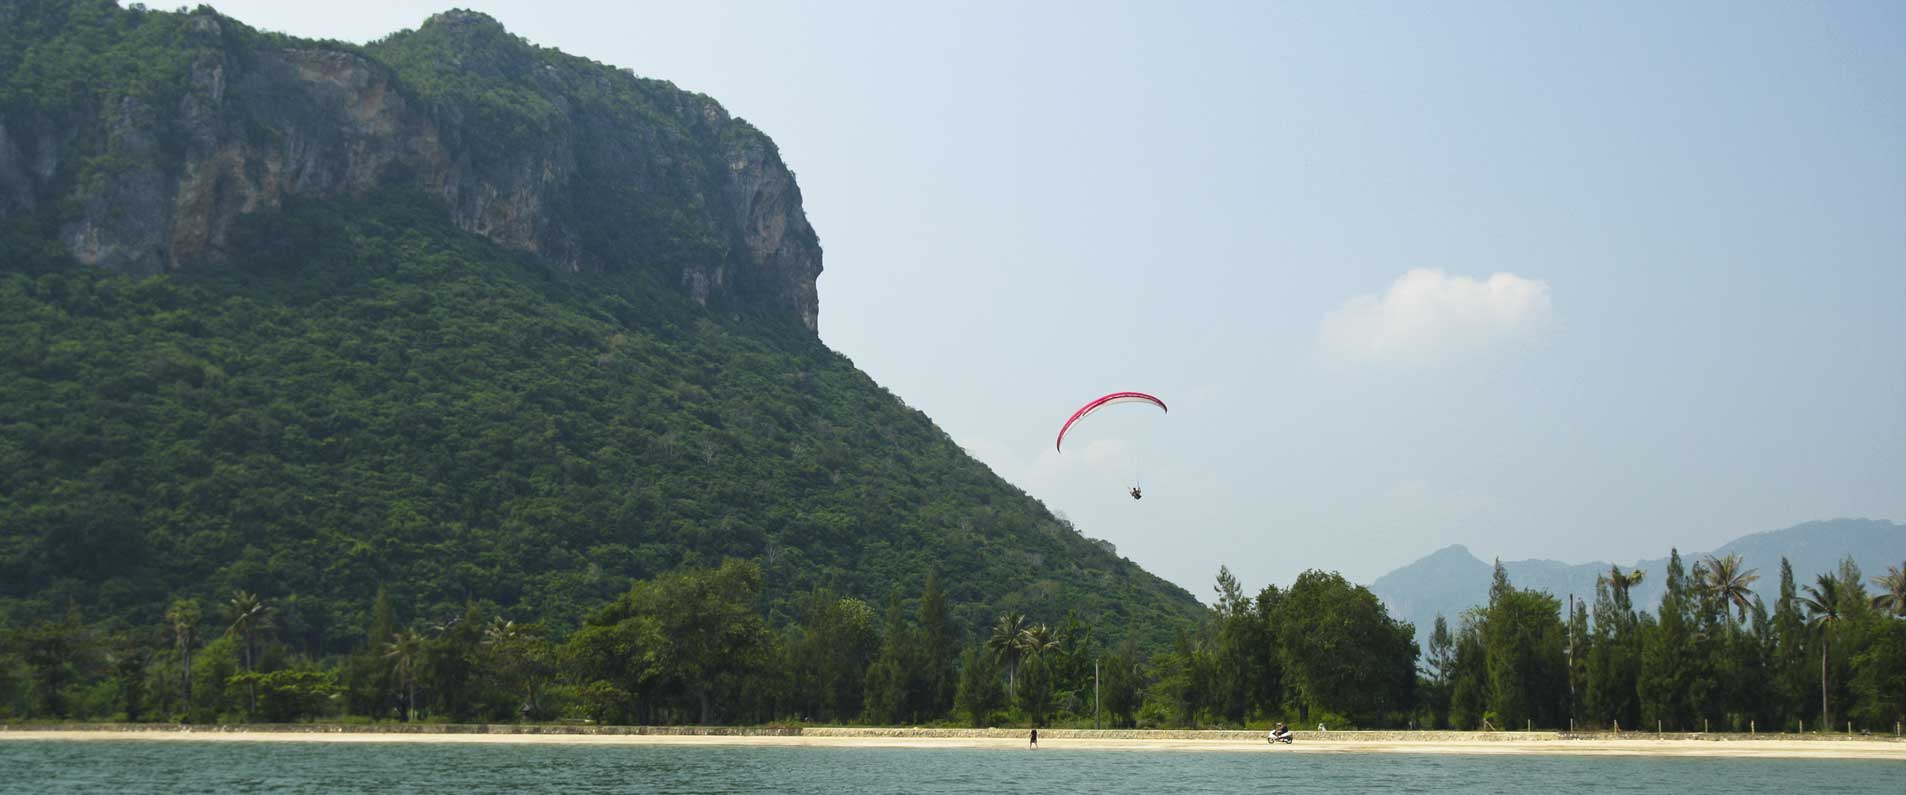 WELCOME TO 300 PEAKS PARAGLIDING, THAILAND